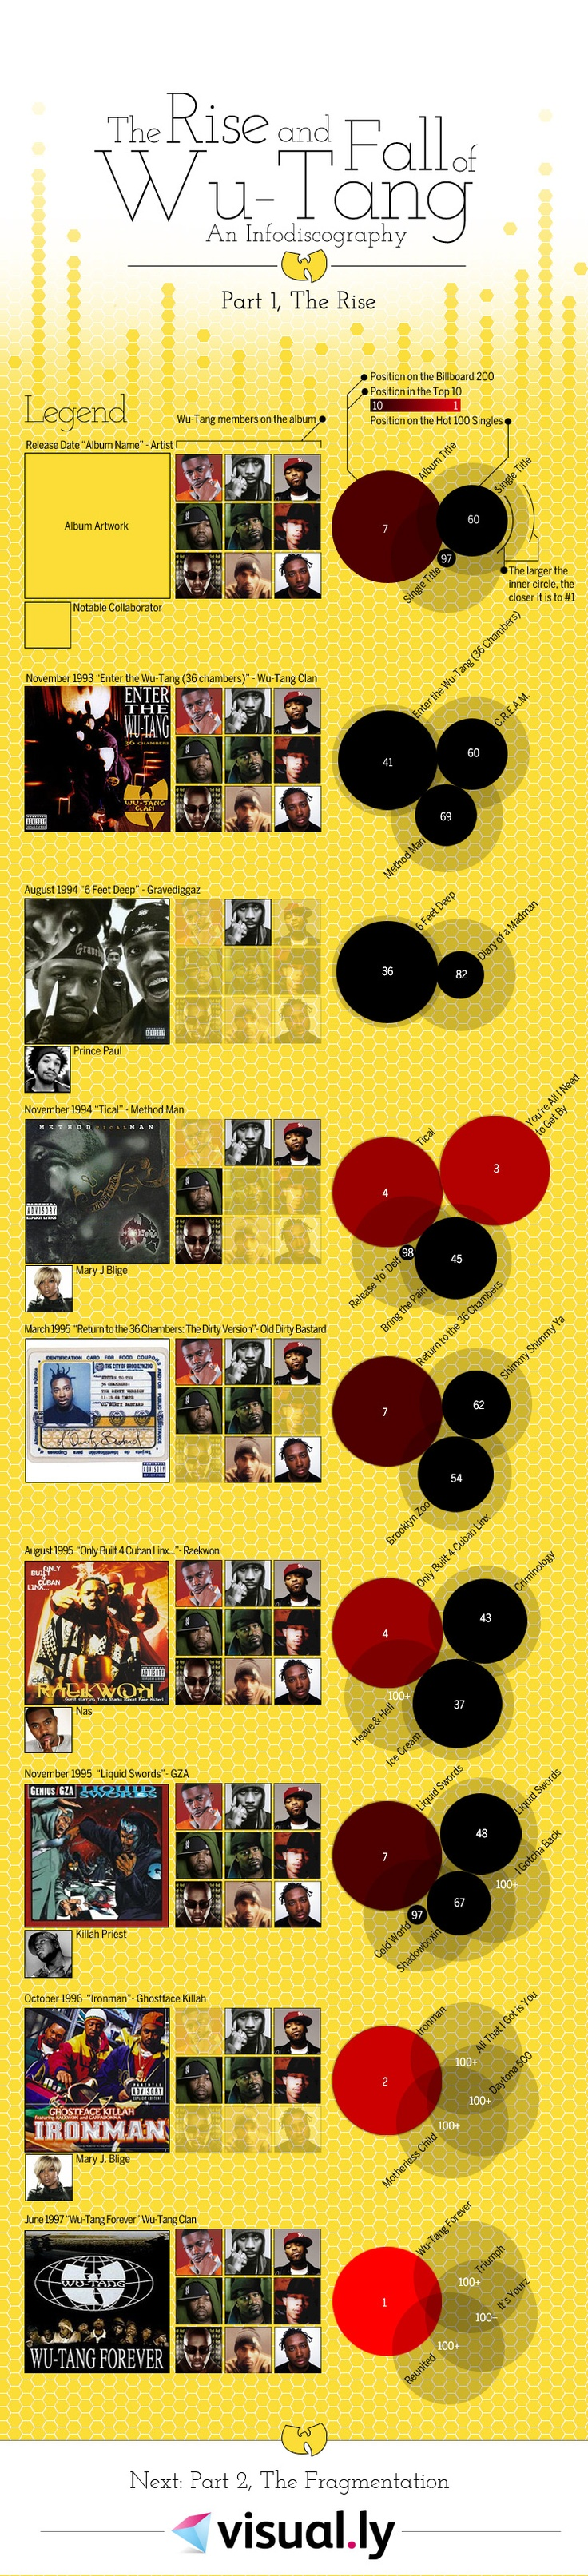 This infographic walks you though Wu-Tang's record... by the numbers. In Part 1: The Rise, you can track record performance through June 1997; be sure